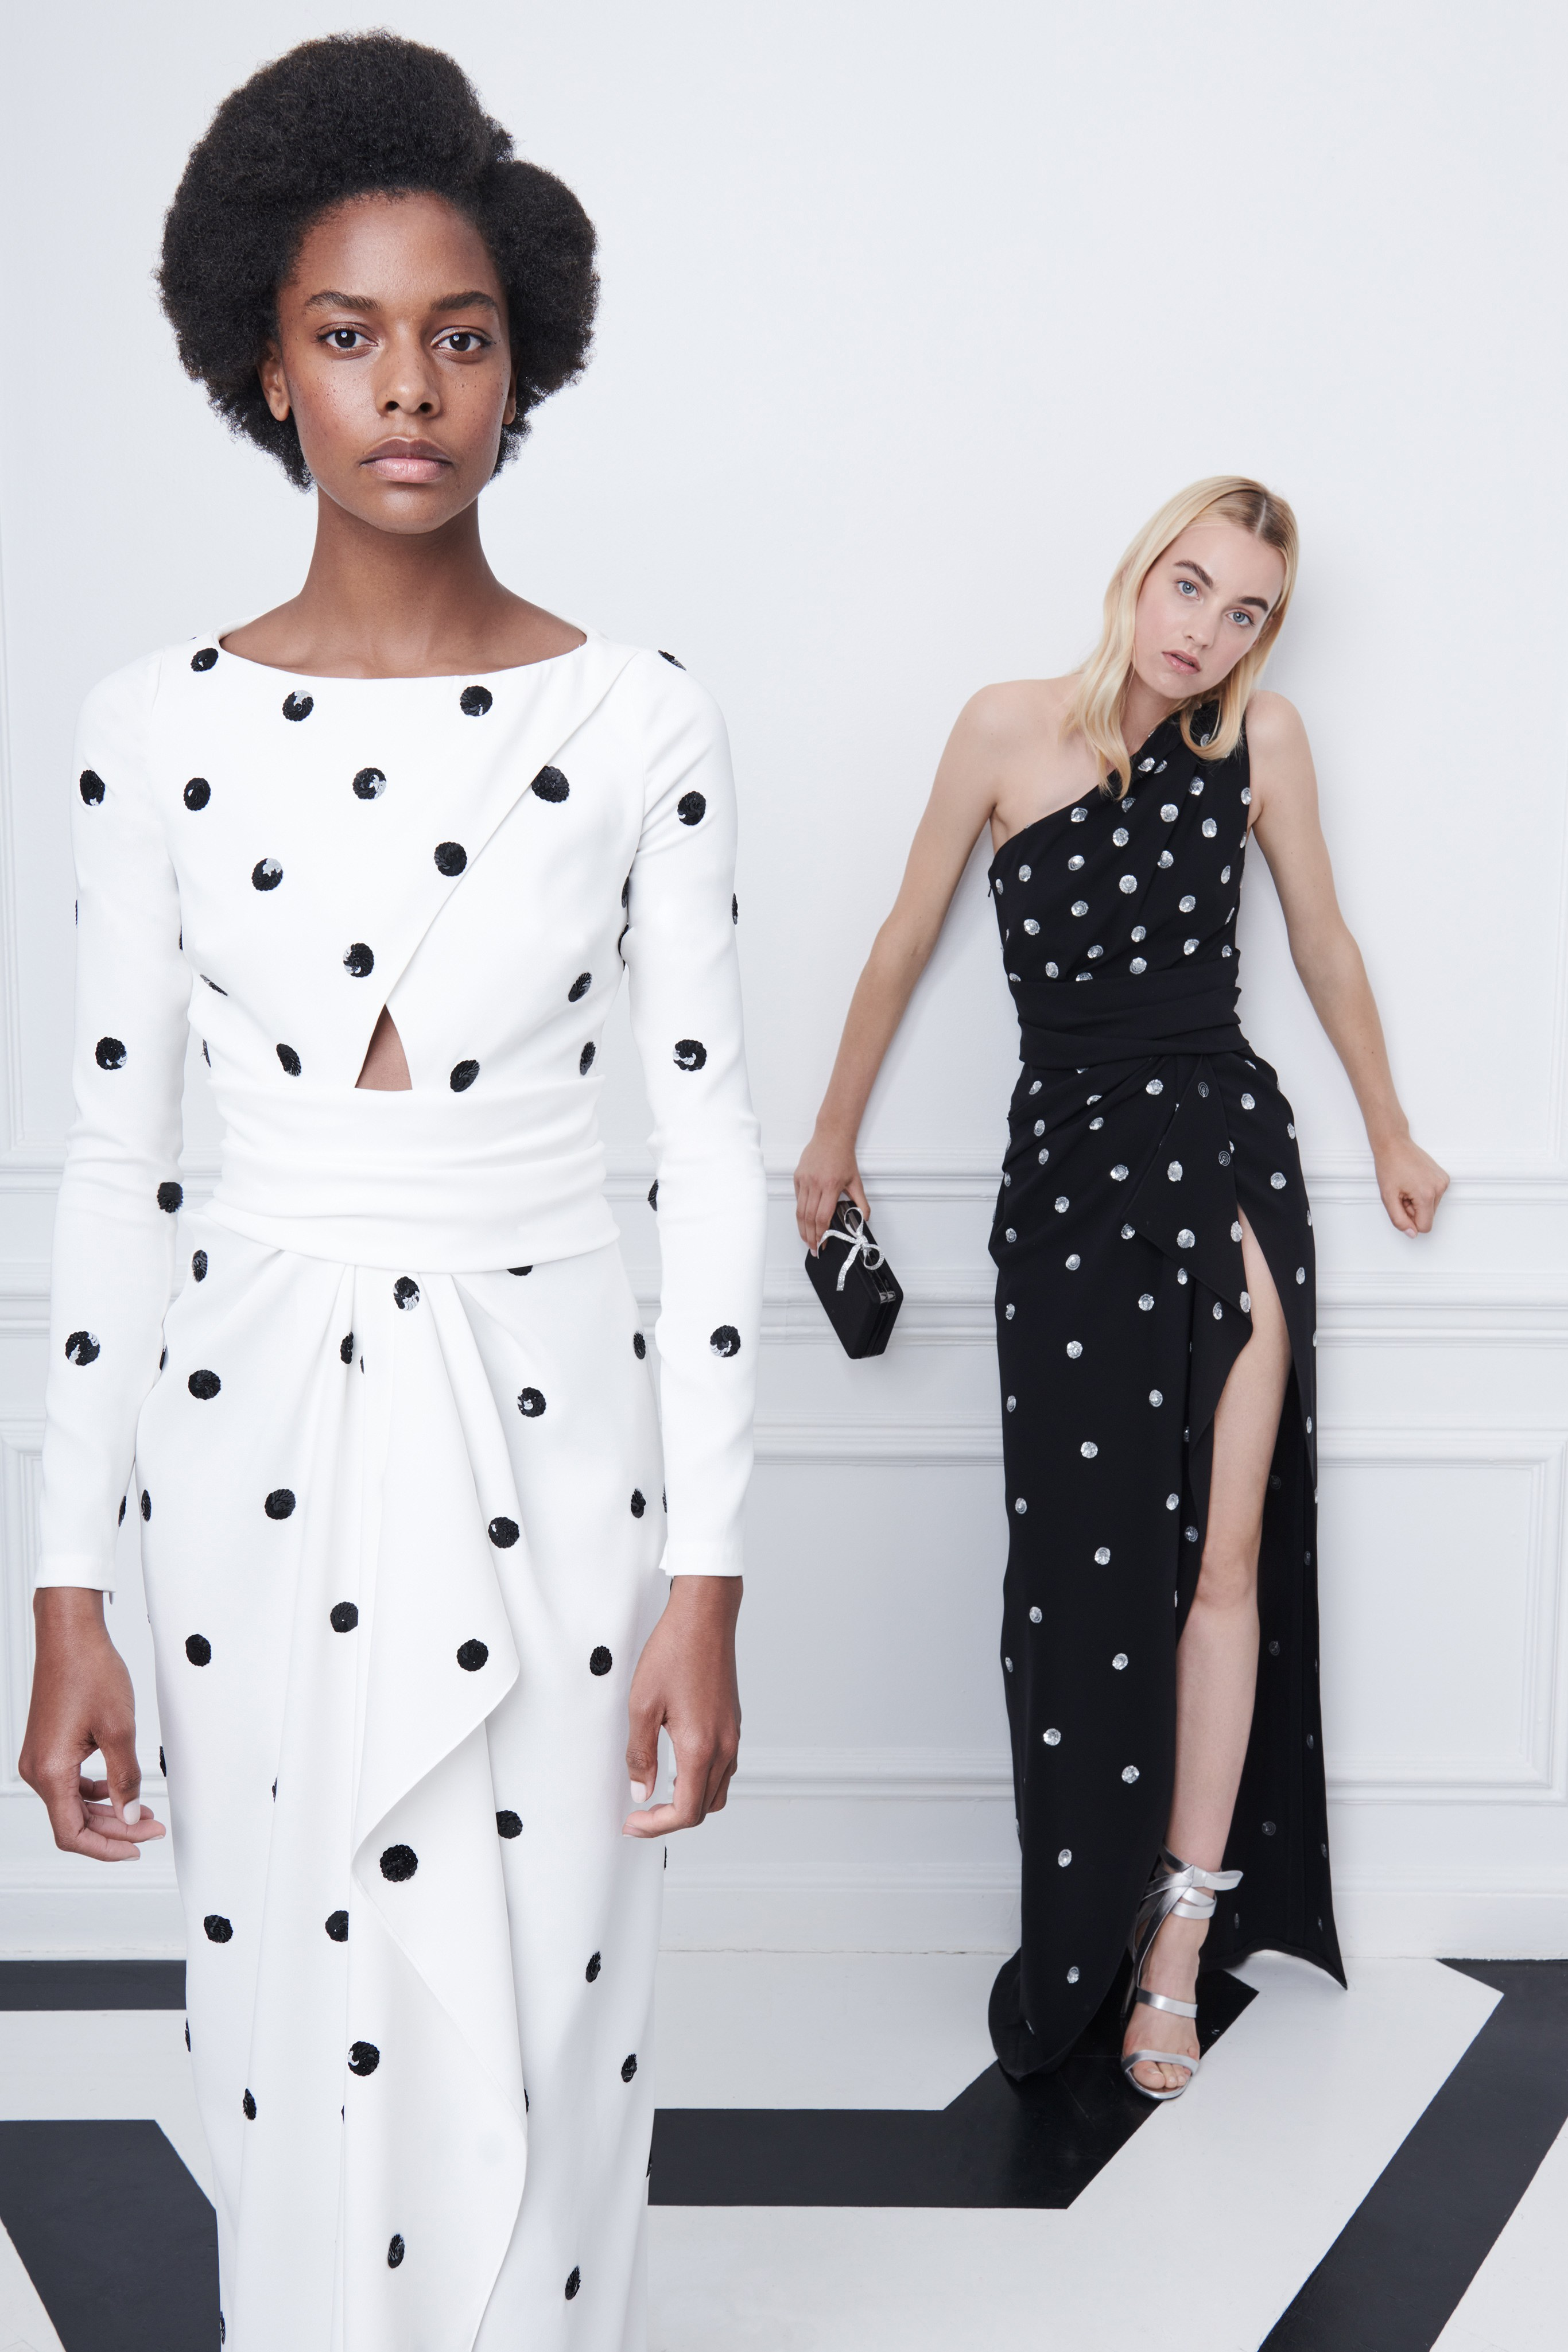 f9fe10f2a3a6 RESORT 2019 - What is Resort and Why? - University of Fashion Blog